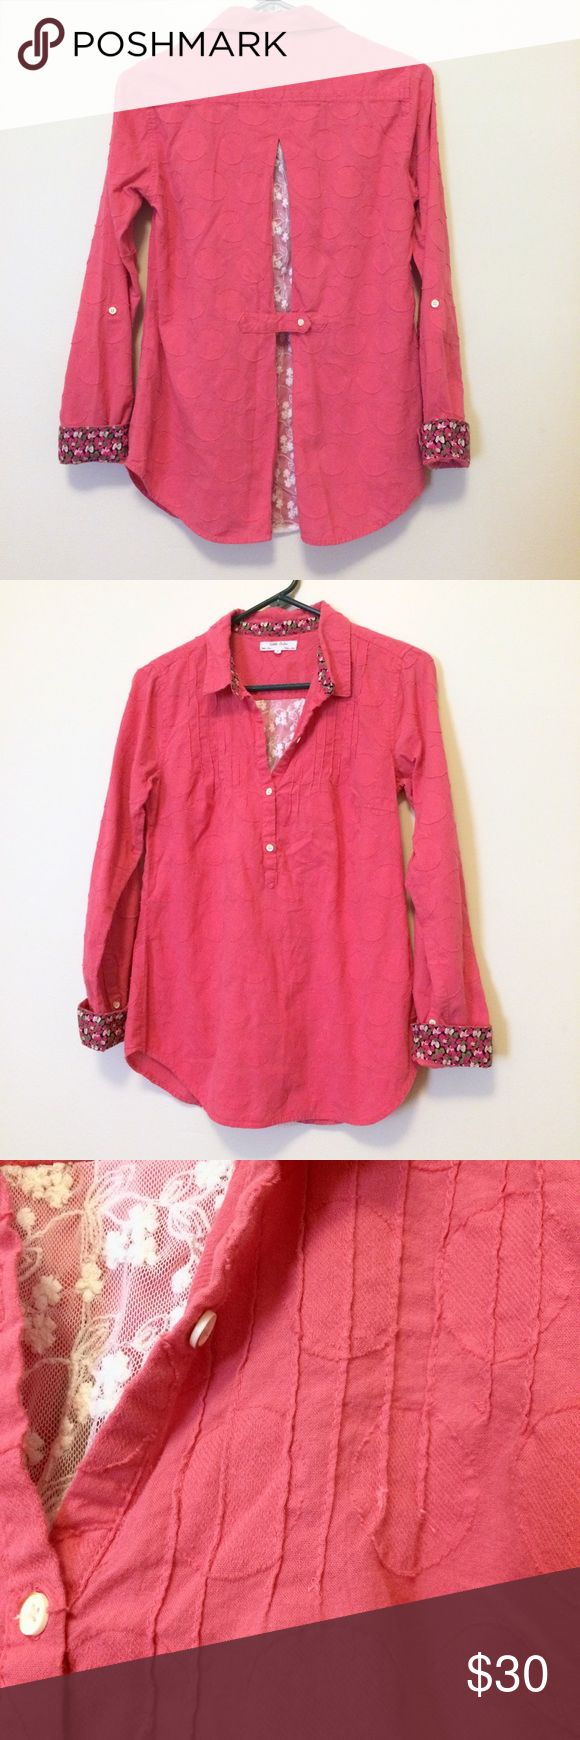 Anthropologie Isabella Sinclair Long Sleeve Top Pretty pink long sleeve top with large dot design woven into the fabric. Back has a lace inset. Worn a few times, but in great condition! Anthropologie Tops Button Down Shirts